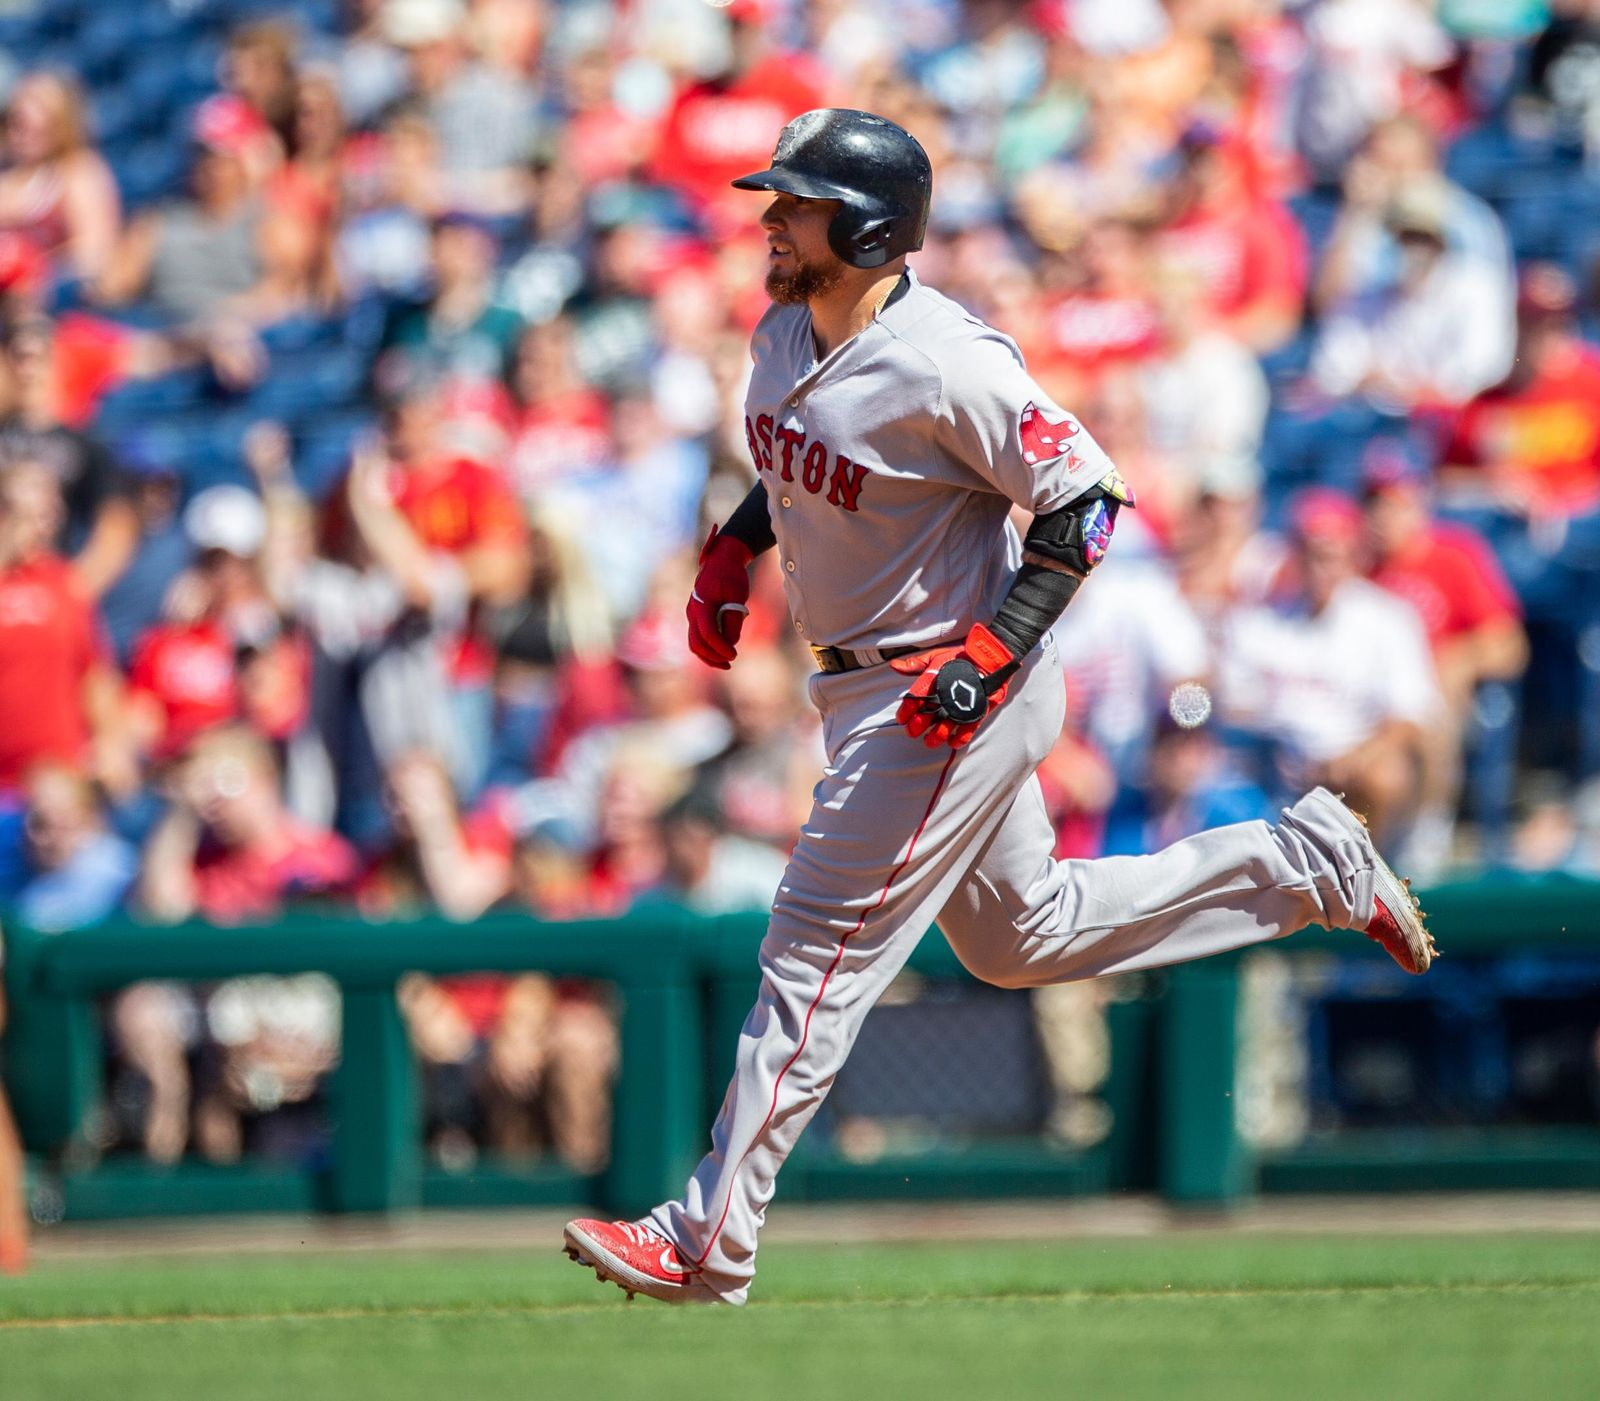 Boston Red Sox's Christian Vazquez runs the bases after hitting a grand slam during the third inning of a baseball game against the Philadelphia Phillies, Sunday, Sept. 15, 2019, in Philadelphia. (AP Photo/Laurence Kesterson)